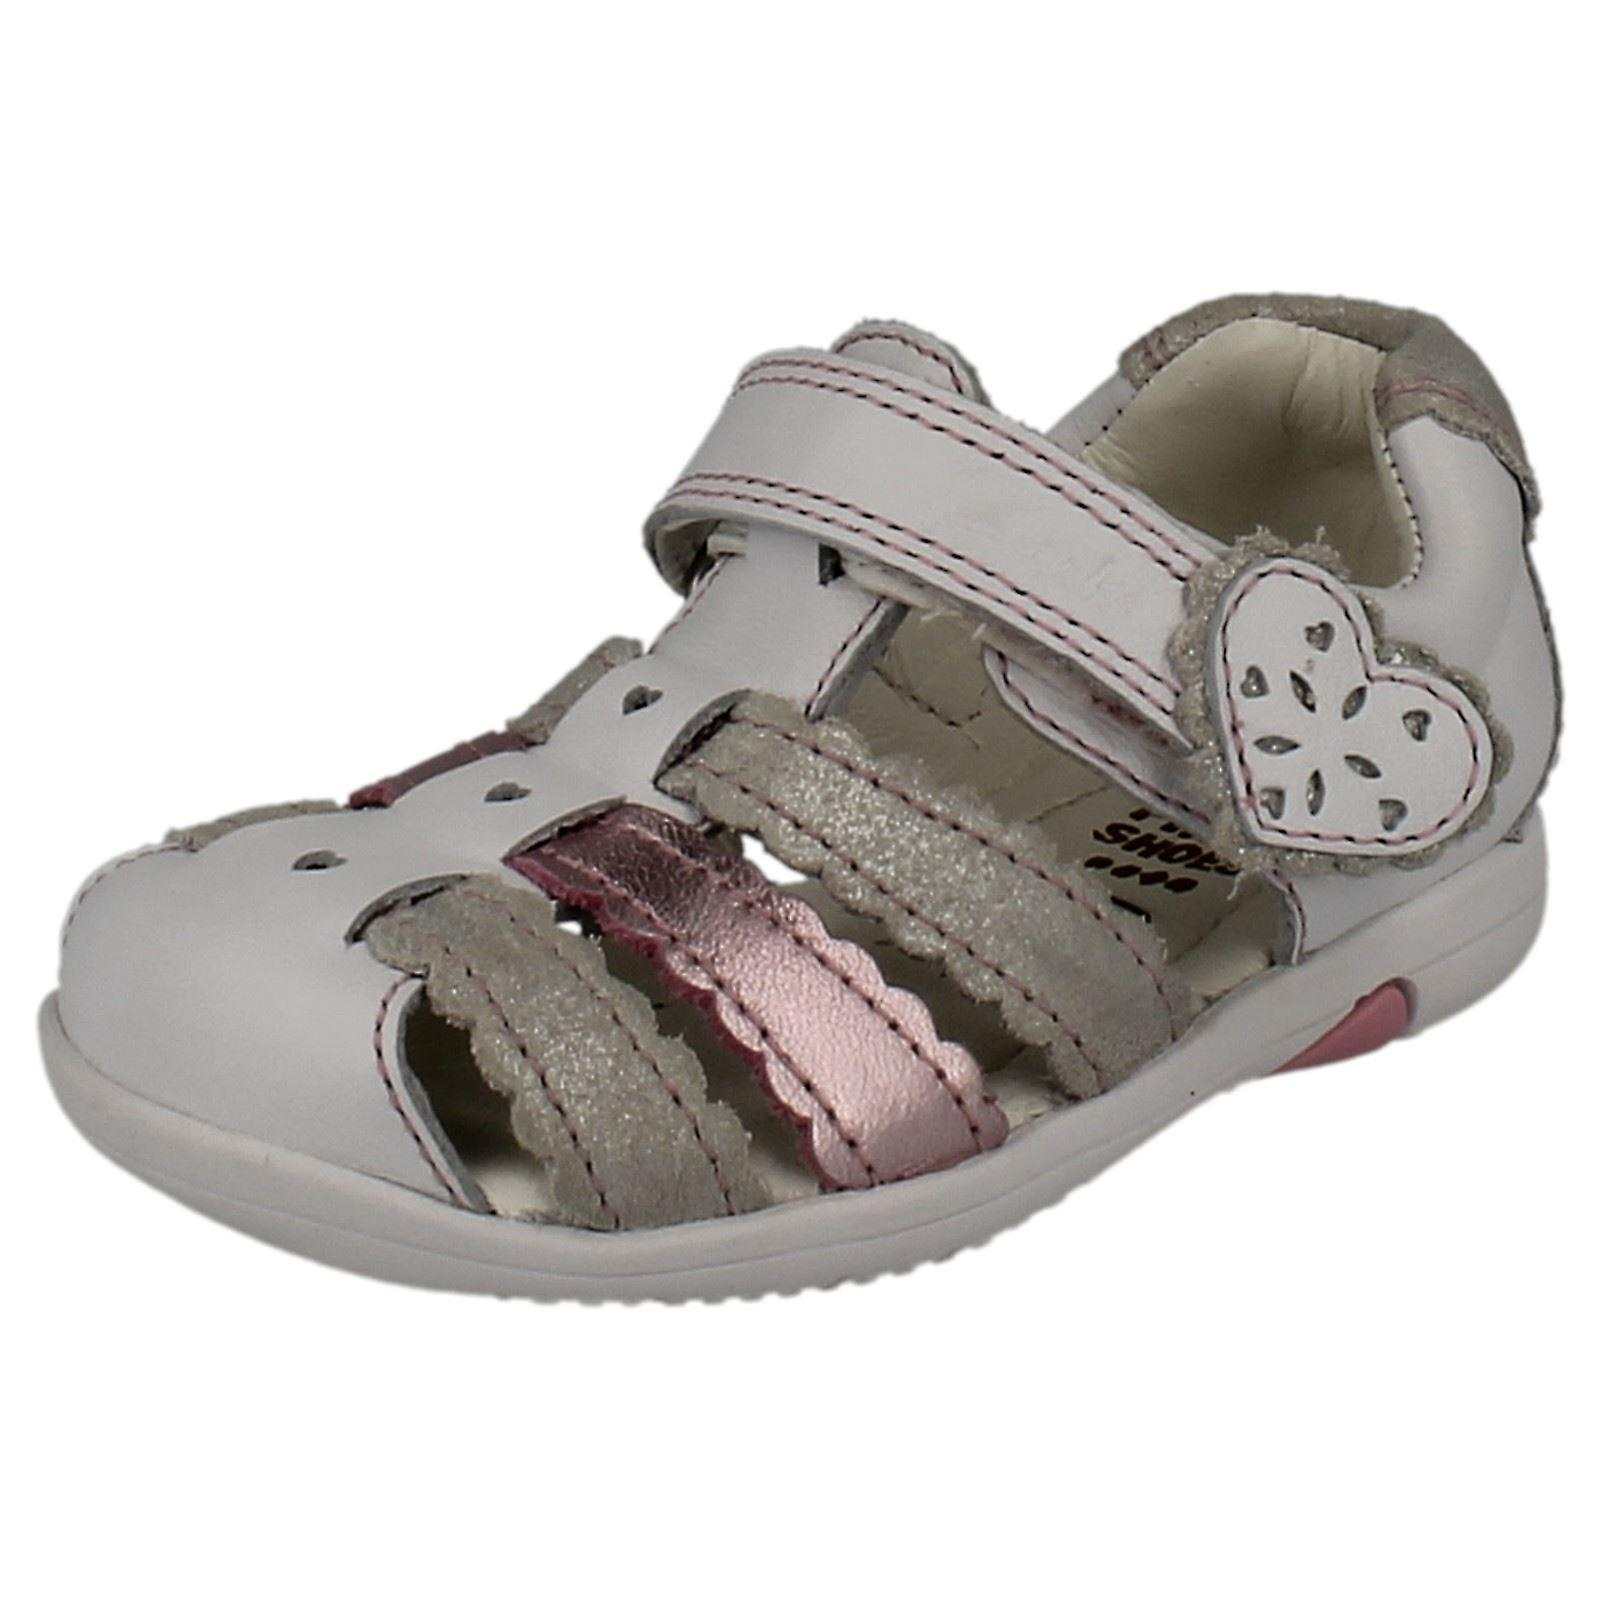 243d342b46f Girls Clarks First Sandals Closed Toe  Softly Palm FST